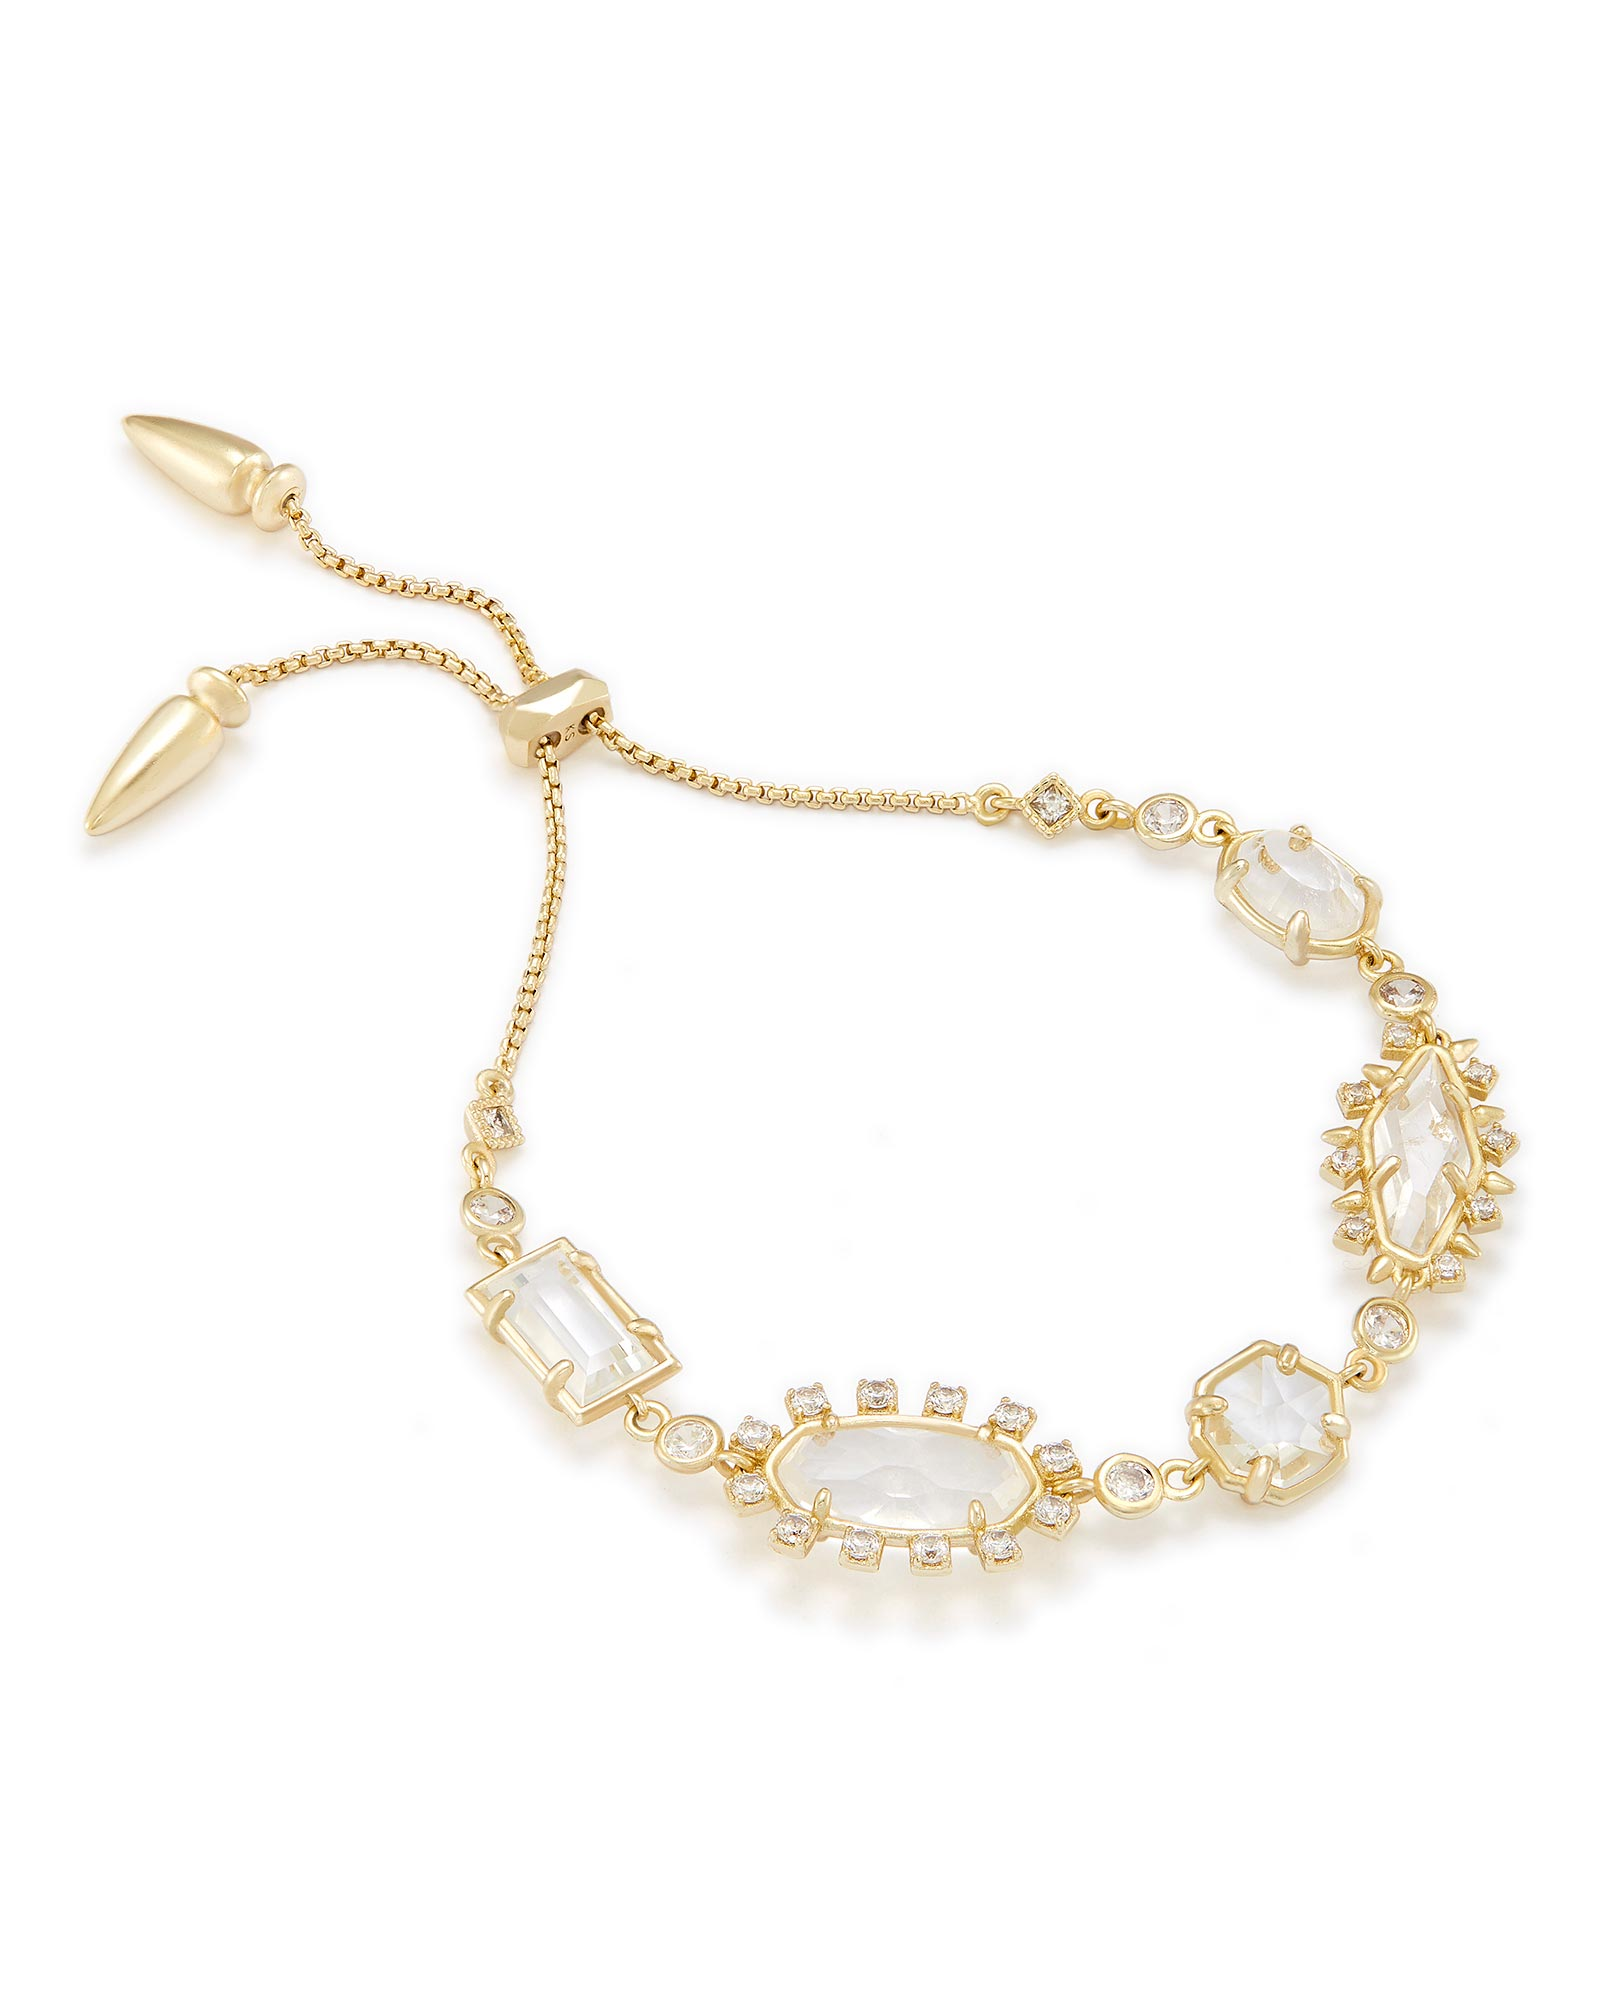 Alicia Adjustable Chain Bracelet in Gold